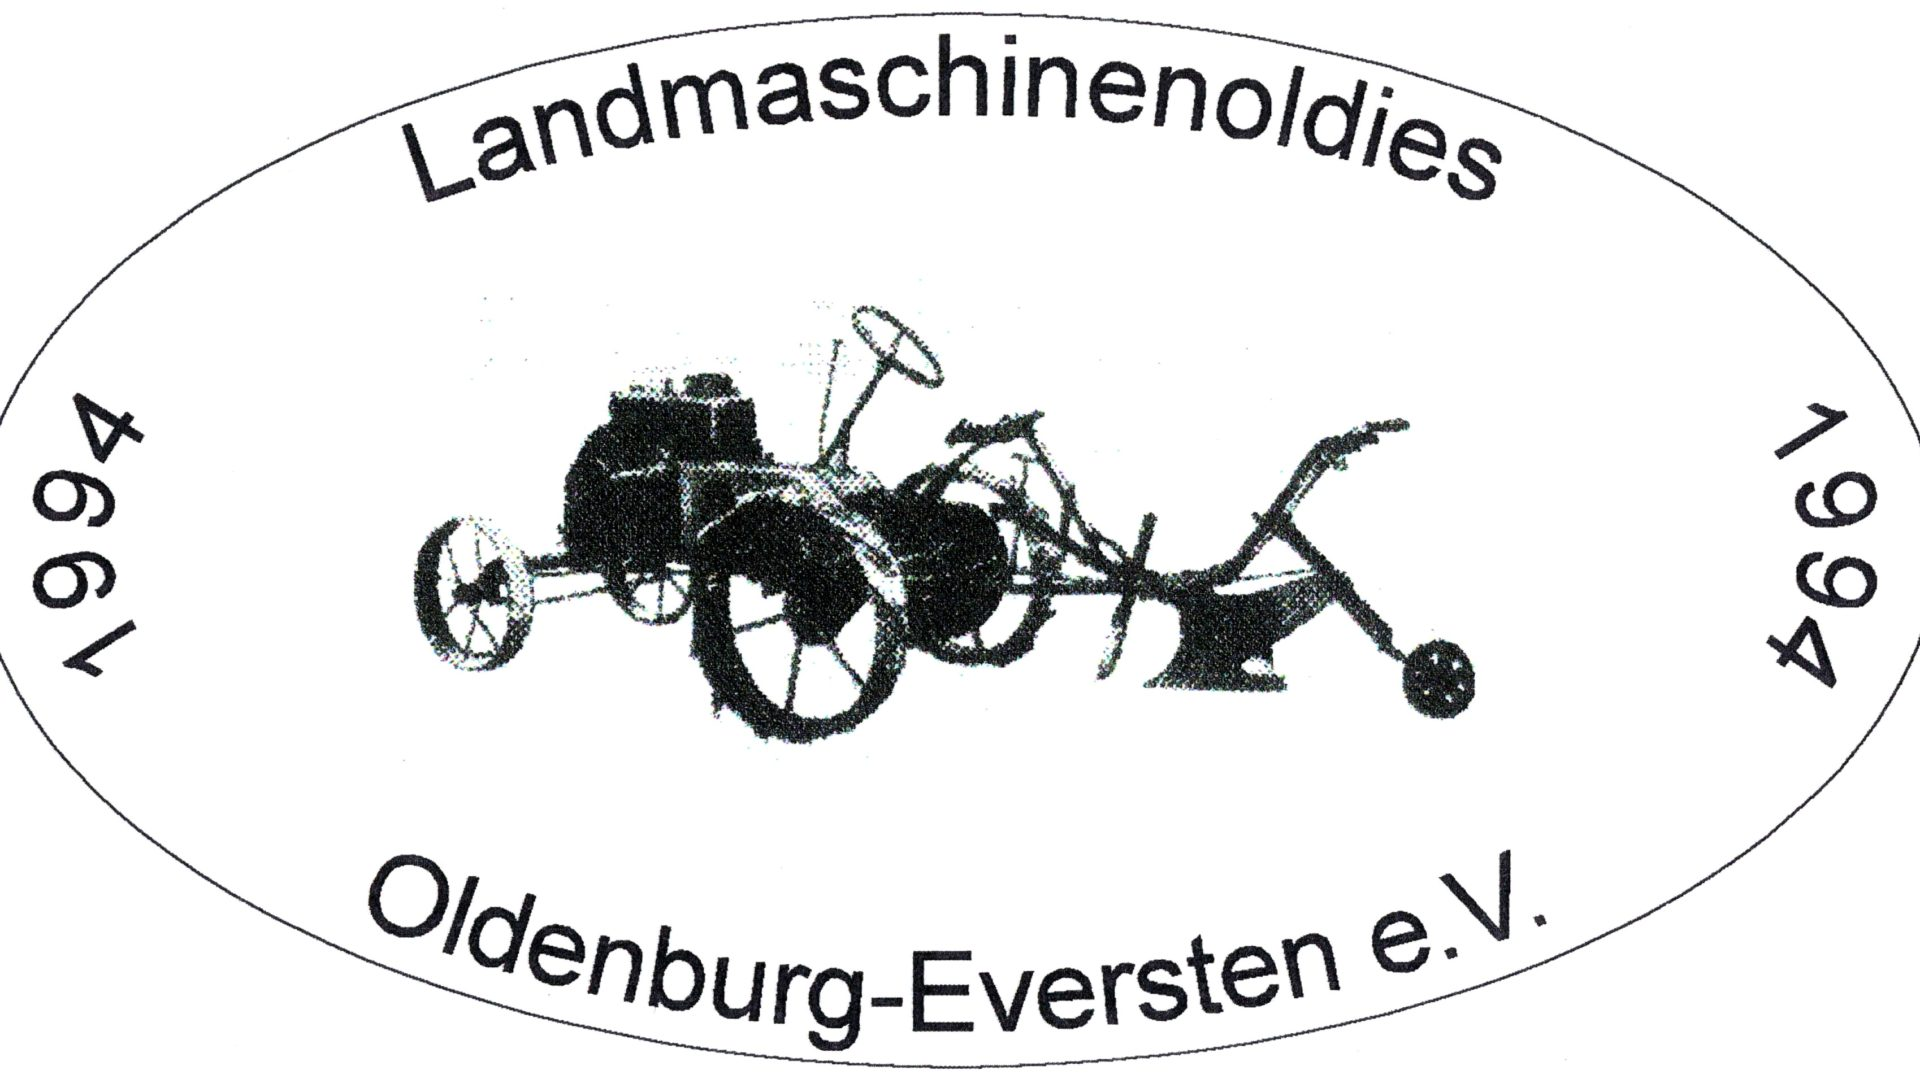 Landmaschinenoldies